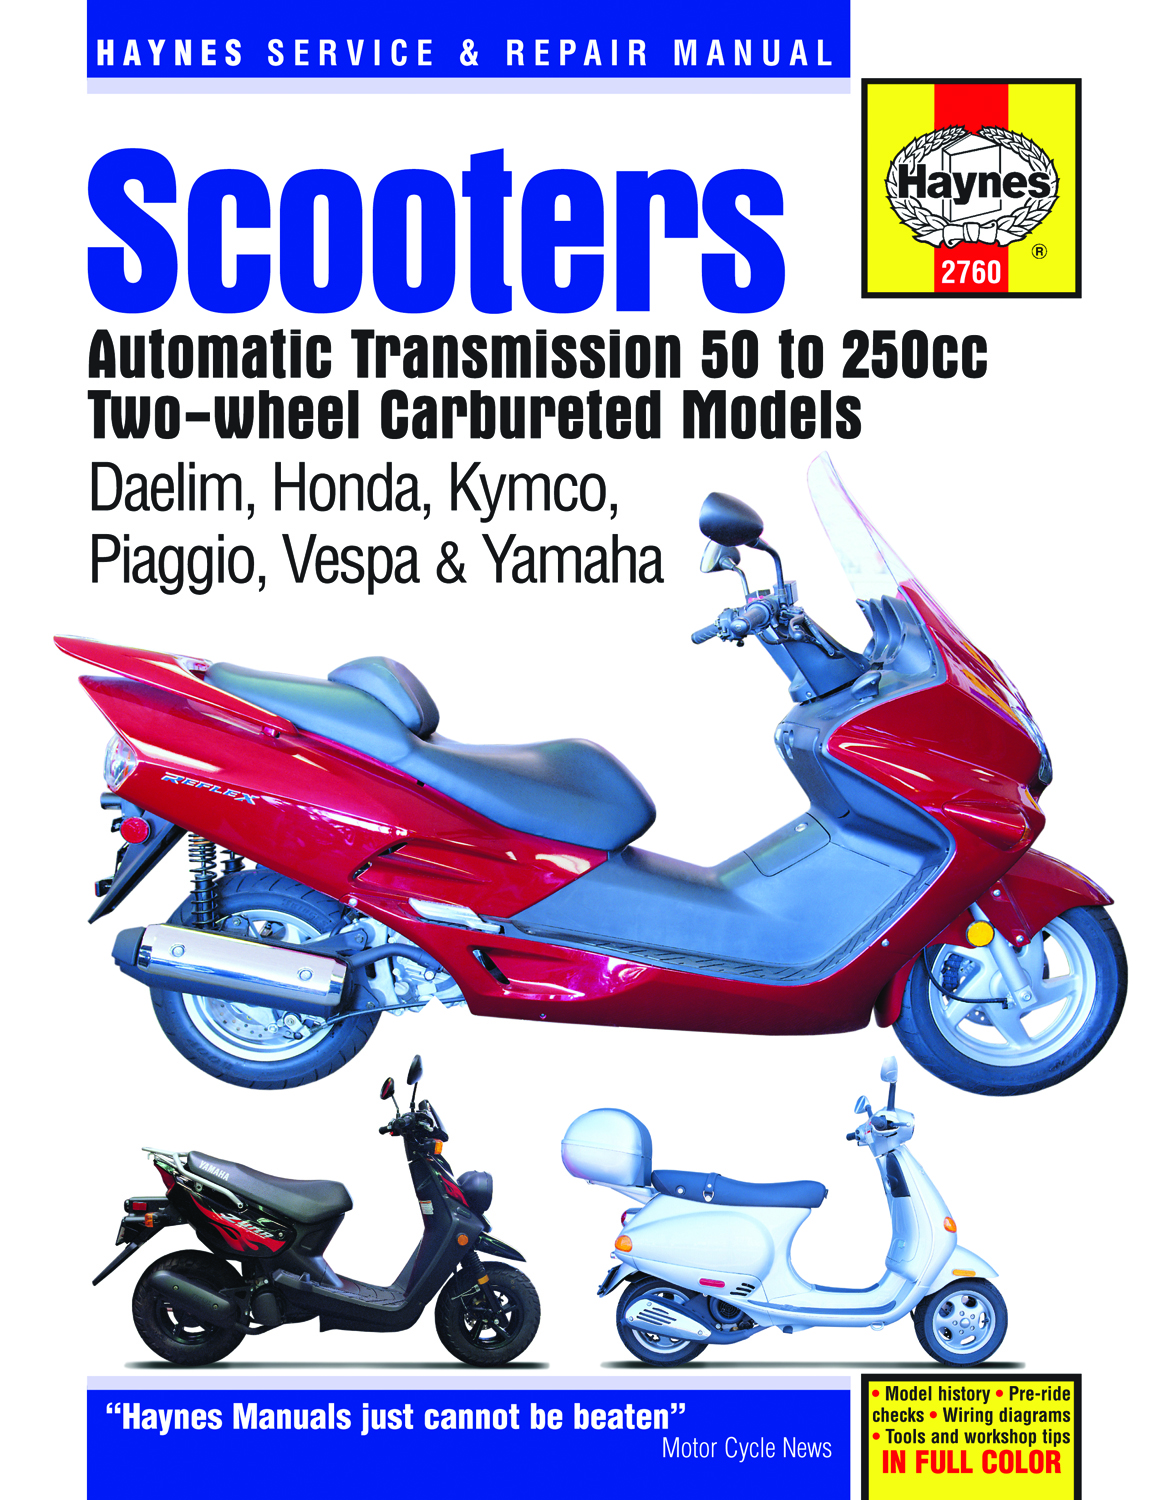 Yw50 Zuma Haynes Manuals 2004 Yamaha Wiring Diagram Enlarge